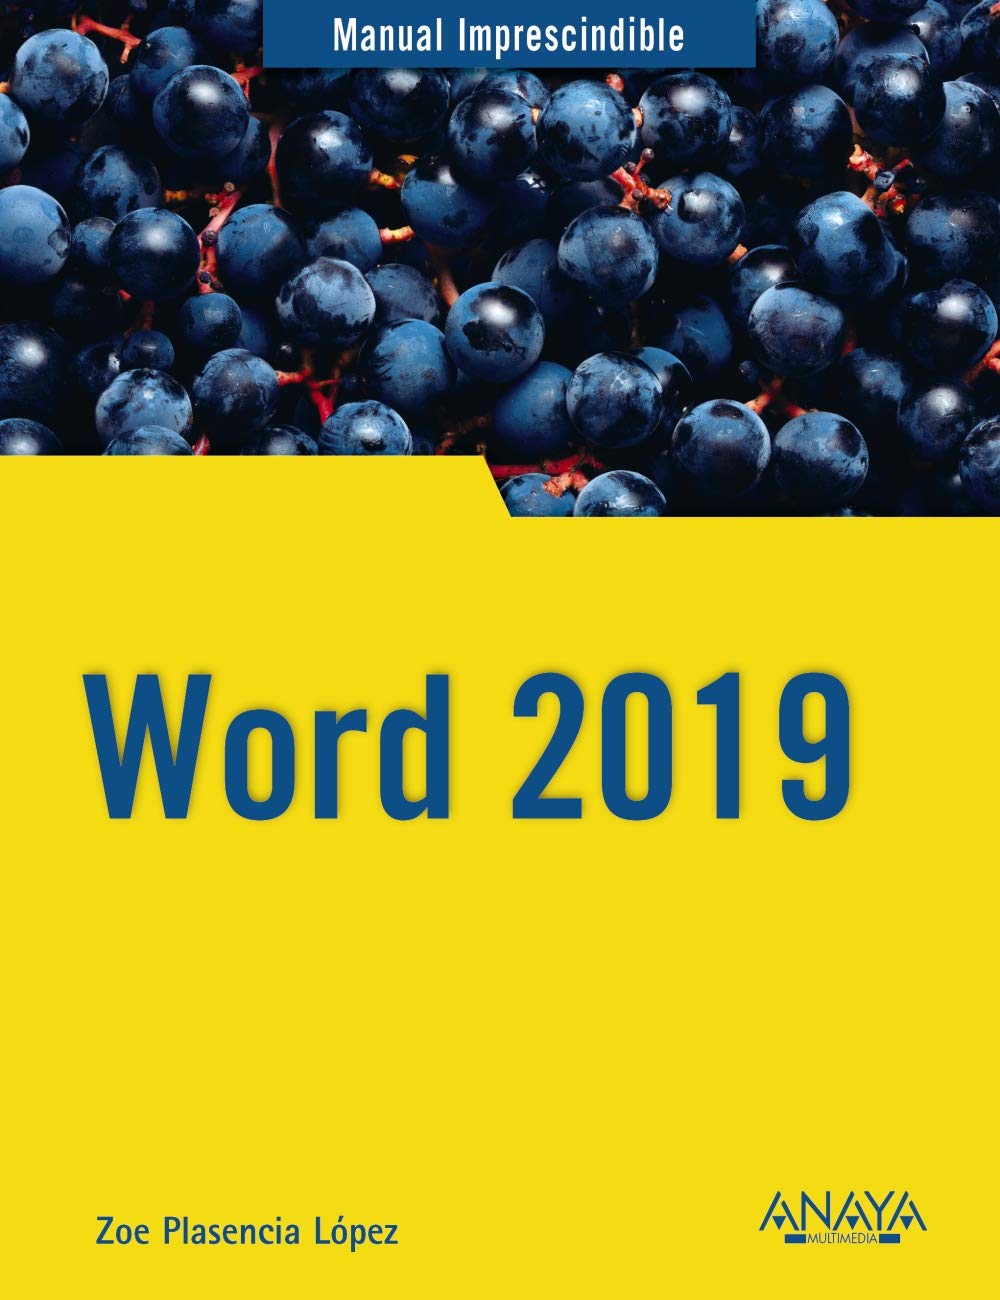 Word 2019 (Manuales Imprescindibles): Amazon.es: Zoe ...